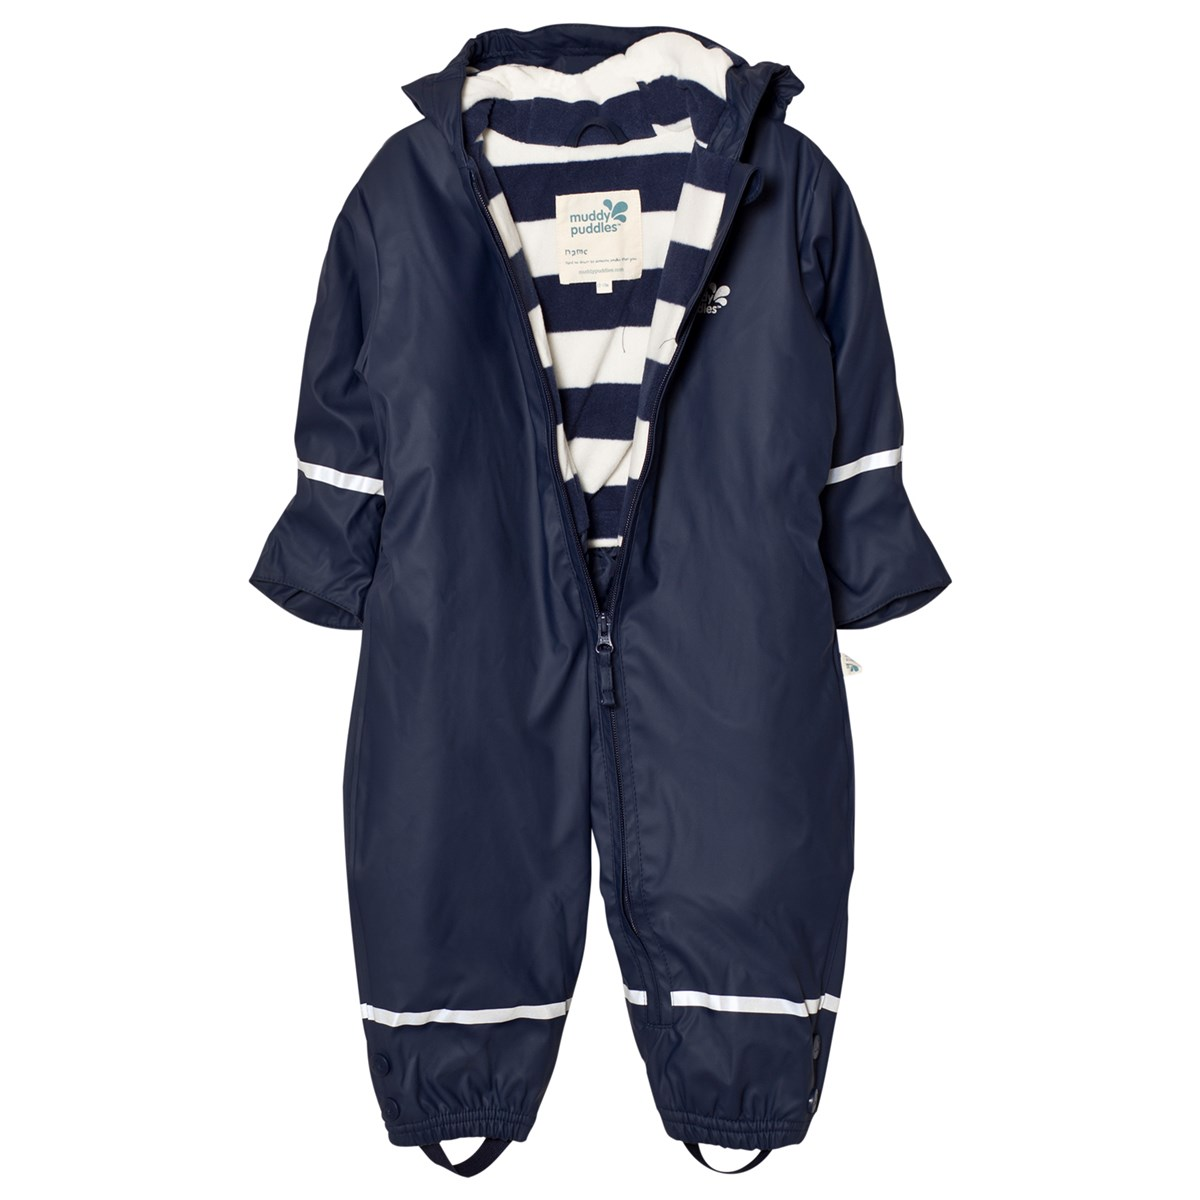 8eec3ceec3fb Muddy Puddles - Navy Puddleflex All-in-One - Babyshop.com